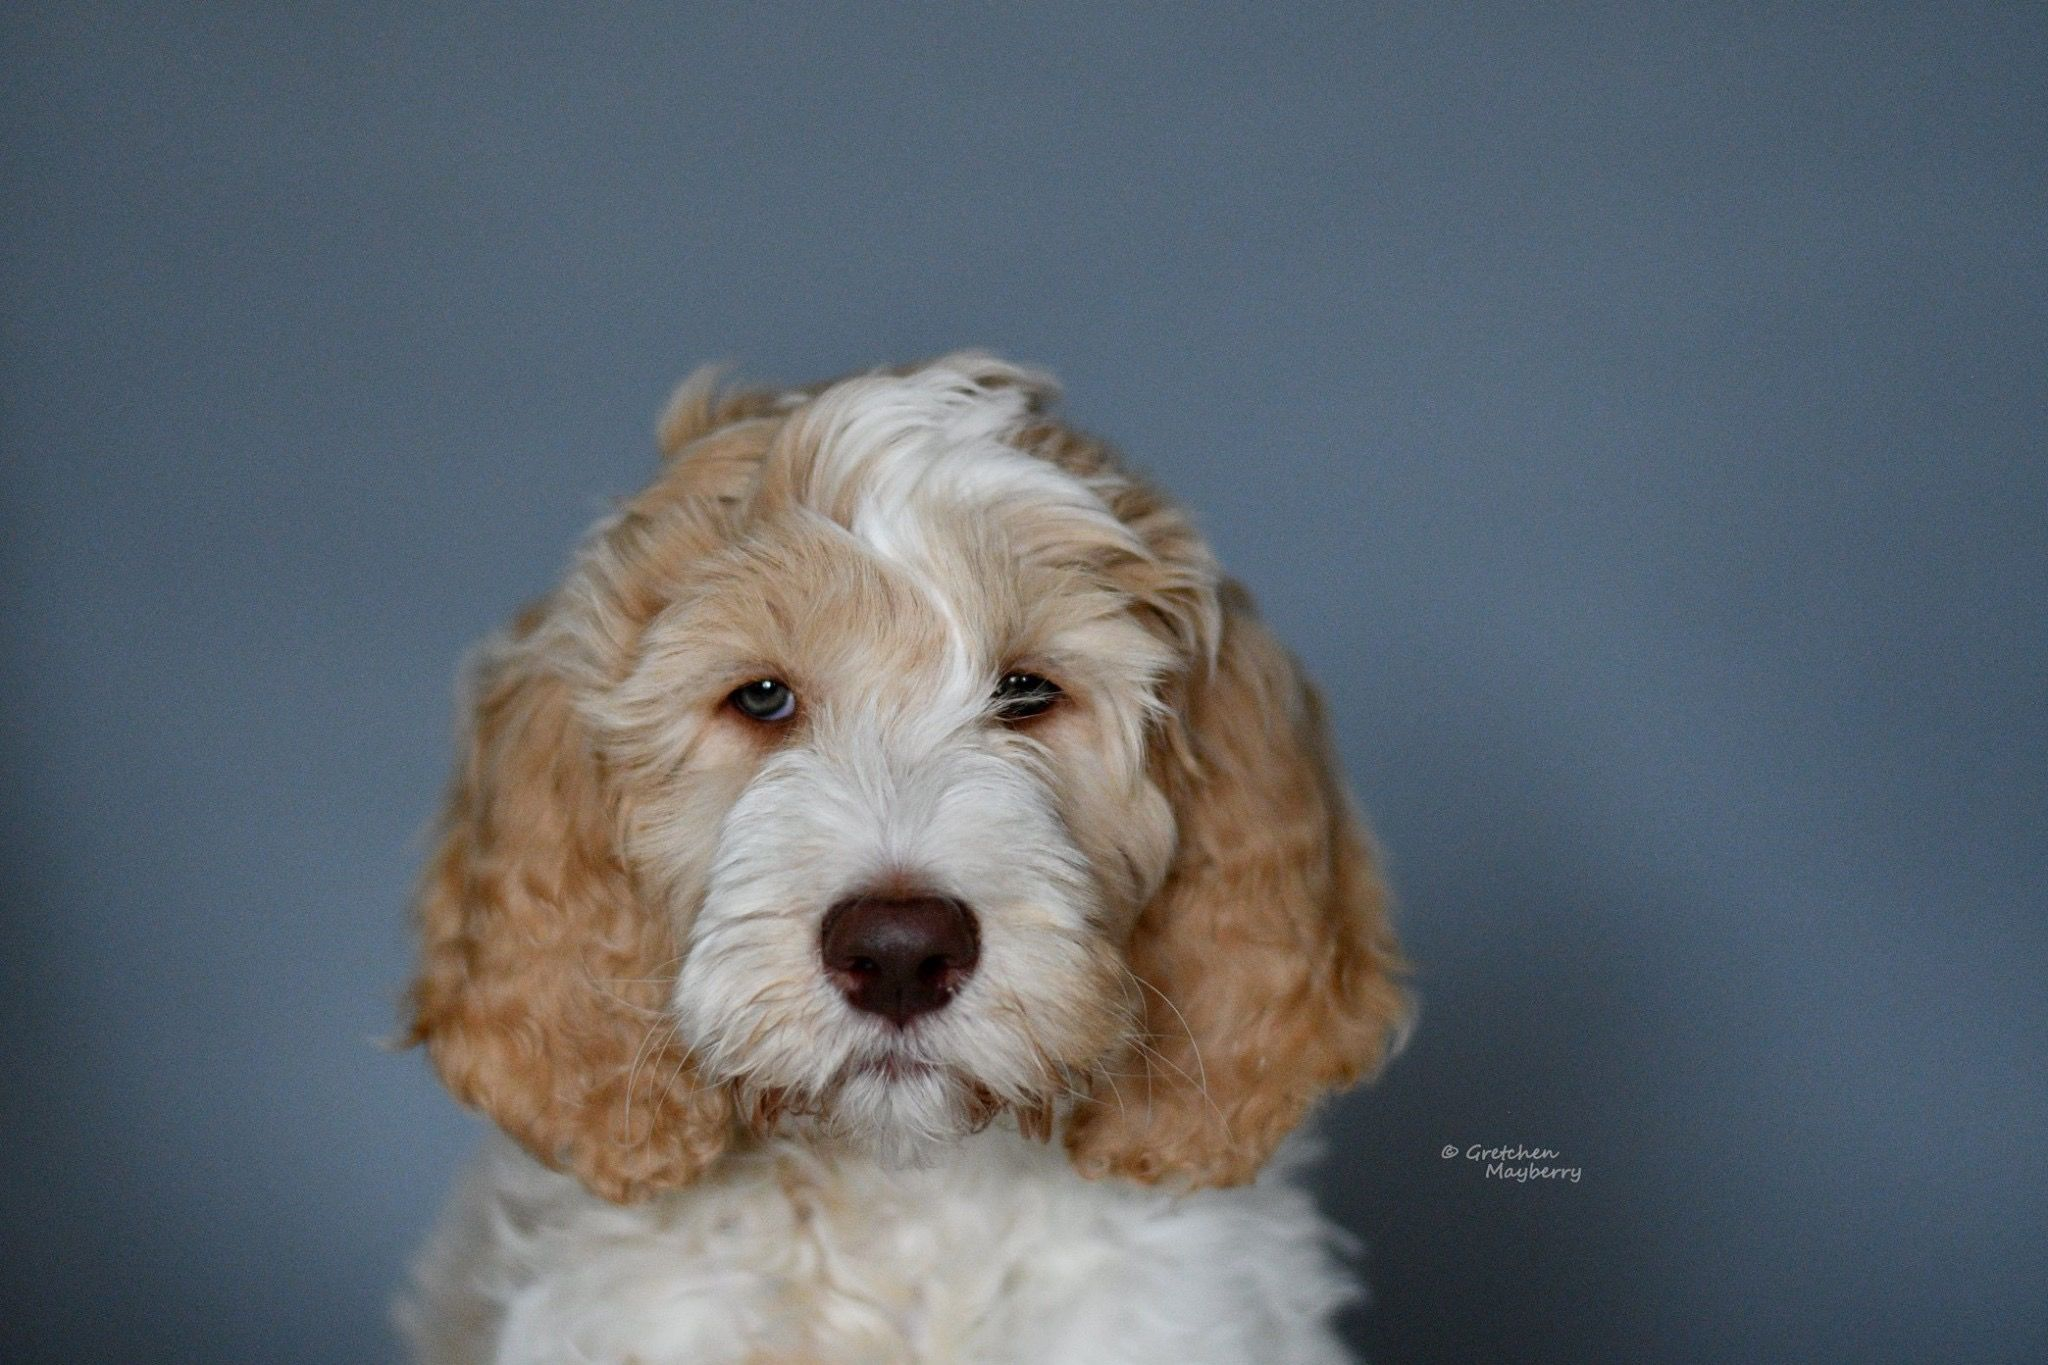 Finley a double doodle puppy who belongs to my niece